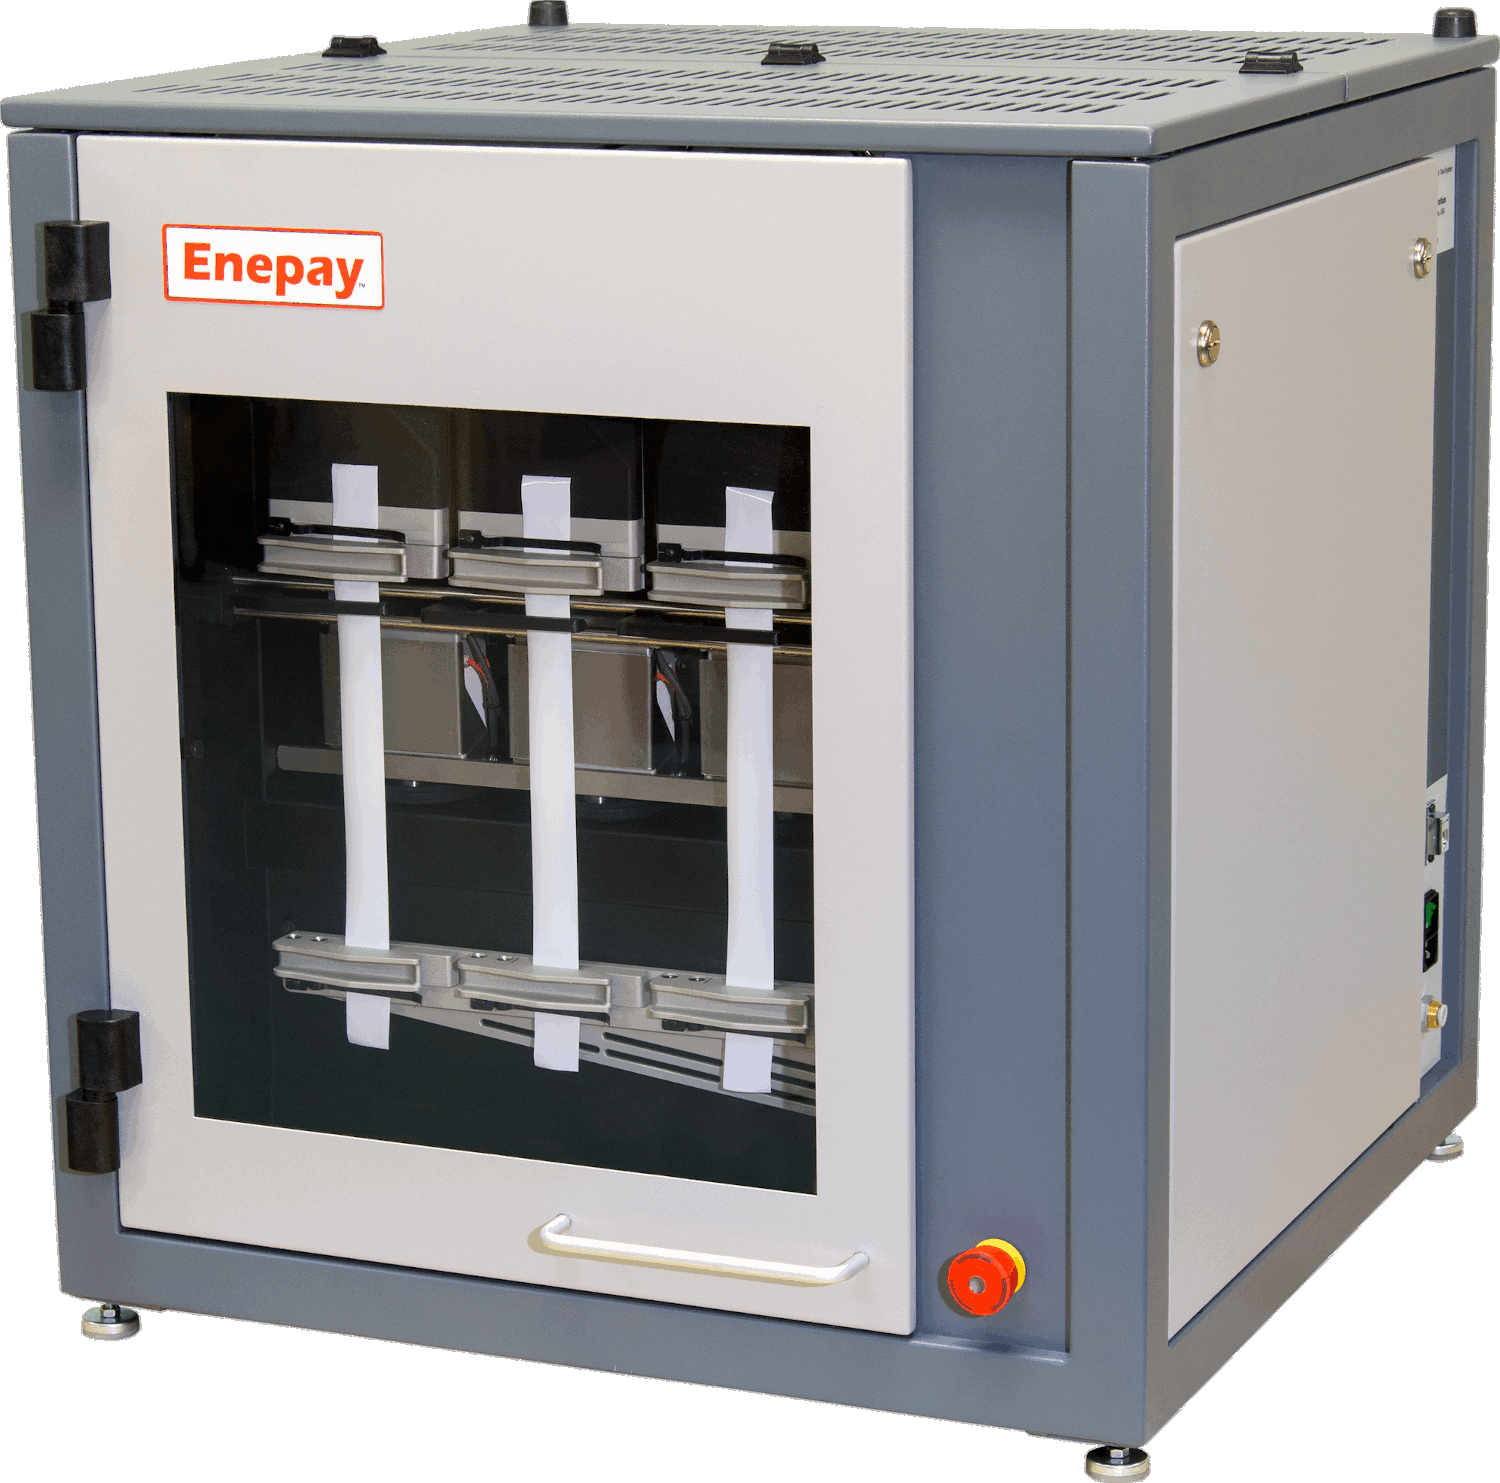 Enepay hot tack and heat seal test instrument for packaging film